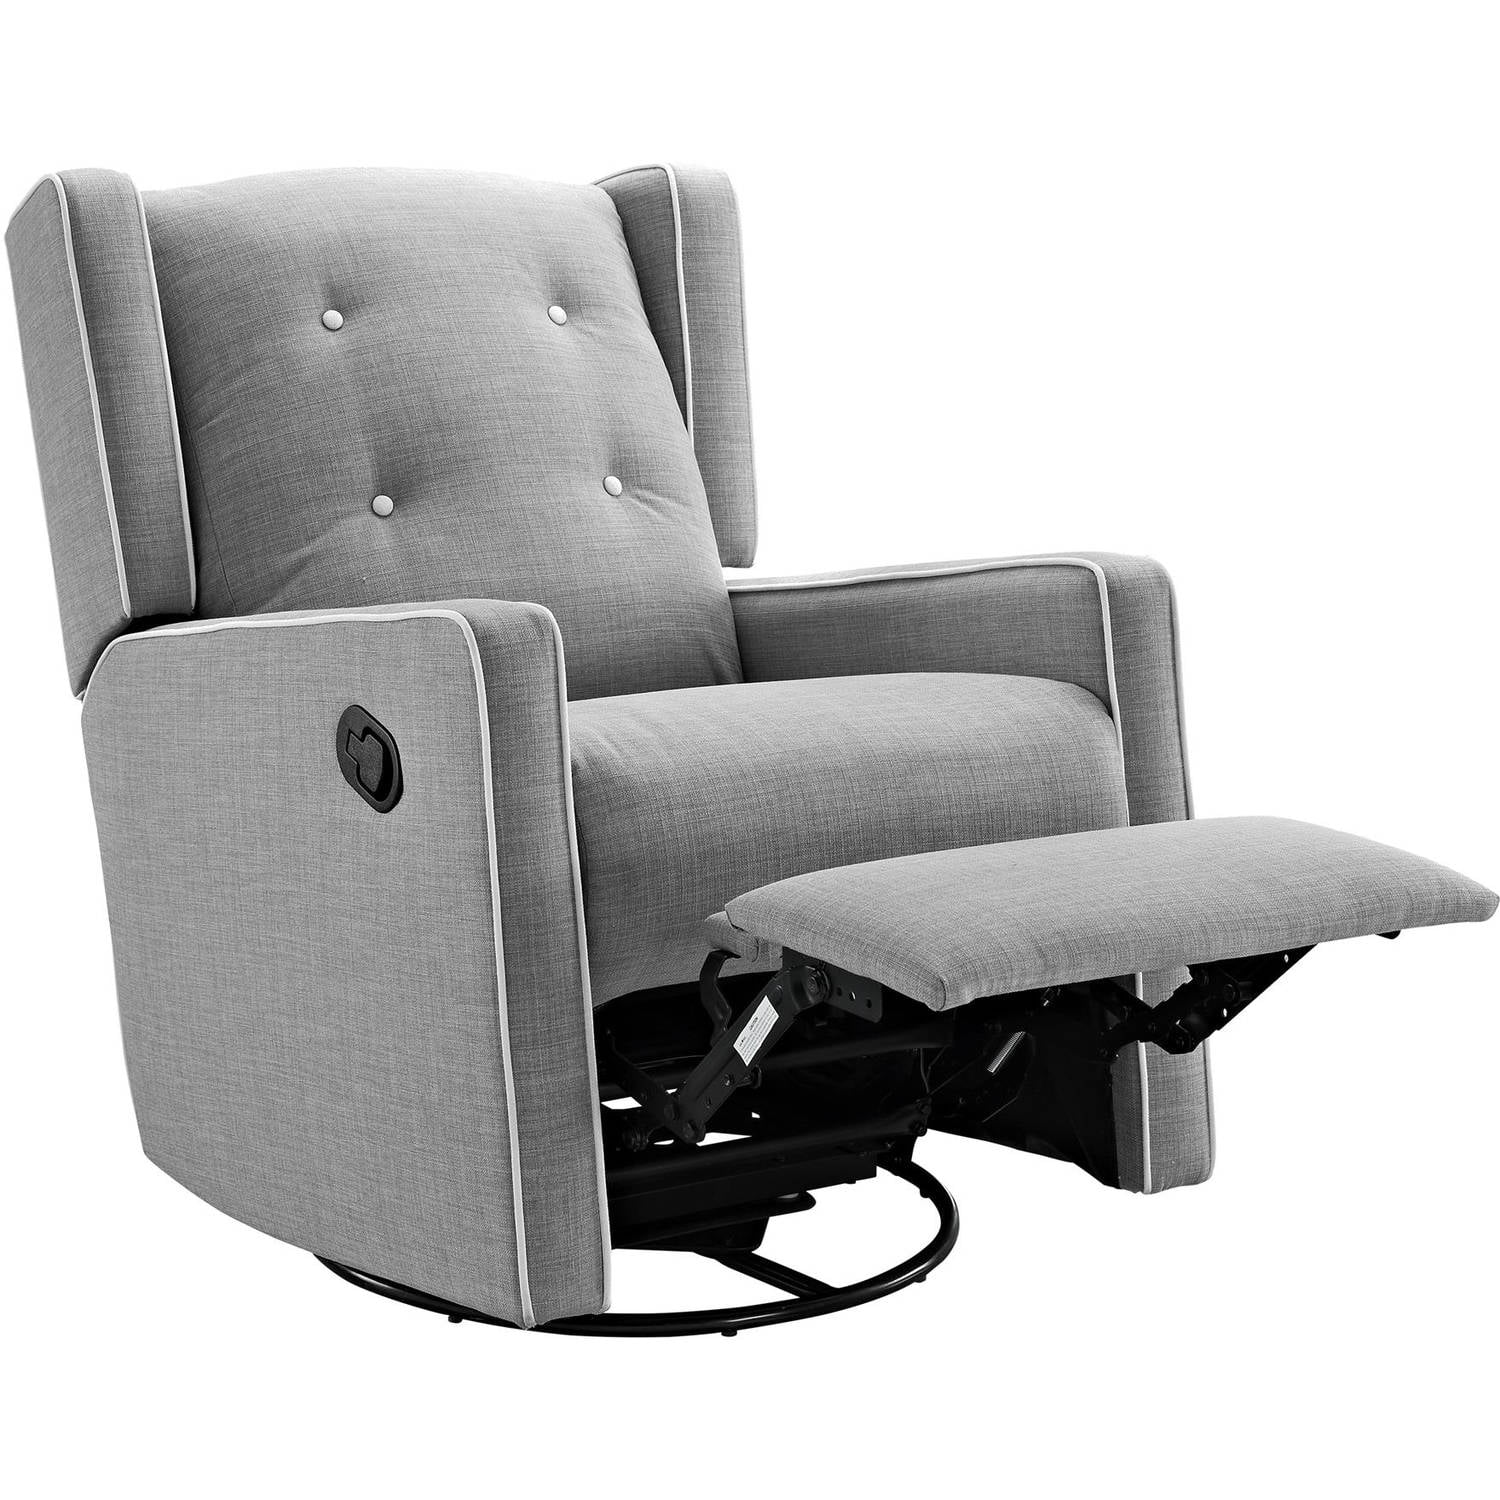 Details About Baby Glider Swivel Rocking Rocker Chair Gliding Recliner Gray Nursery Furniture